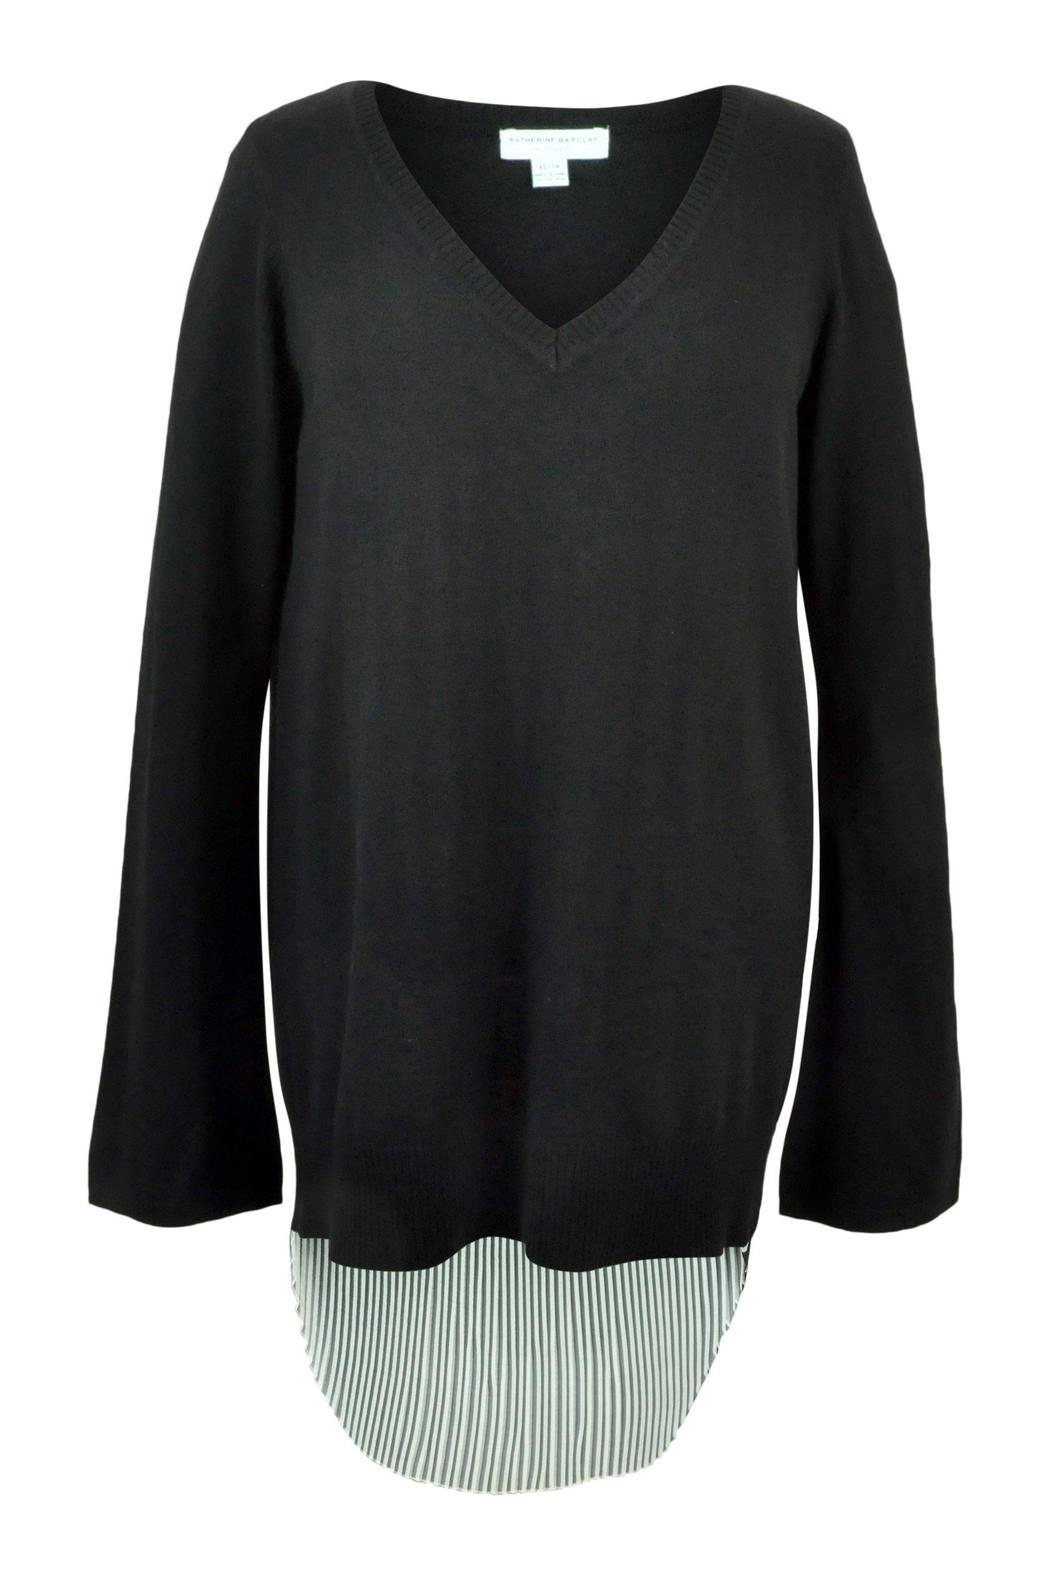 Katherine Barclay Pleated Swing Sweater - Front Full Image